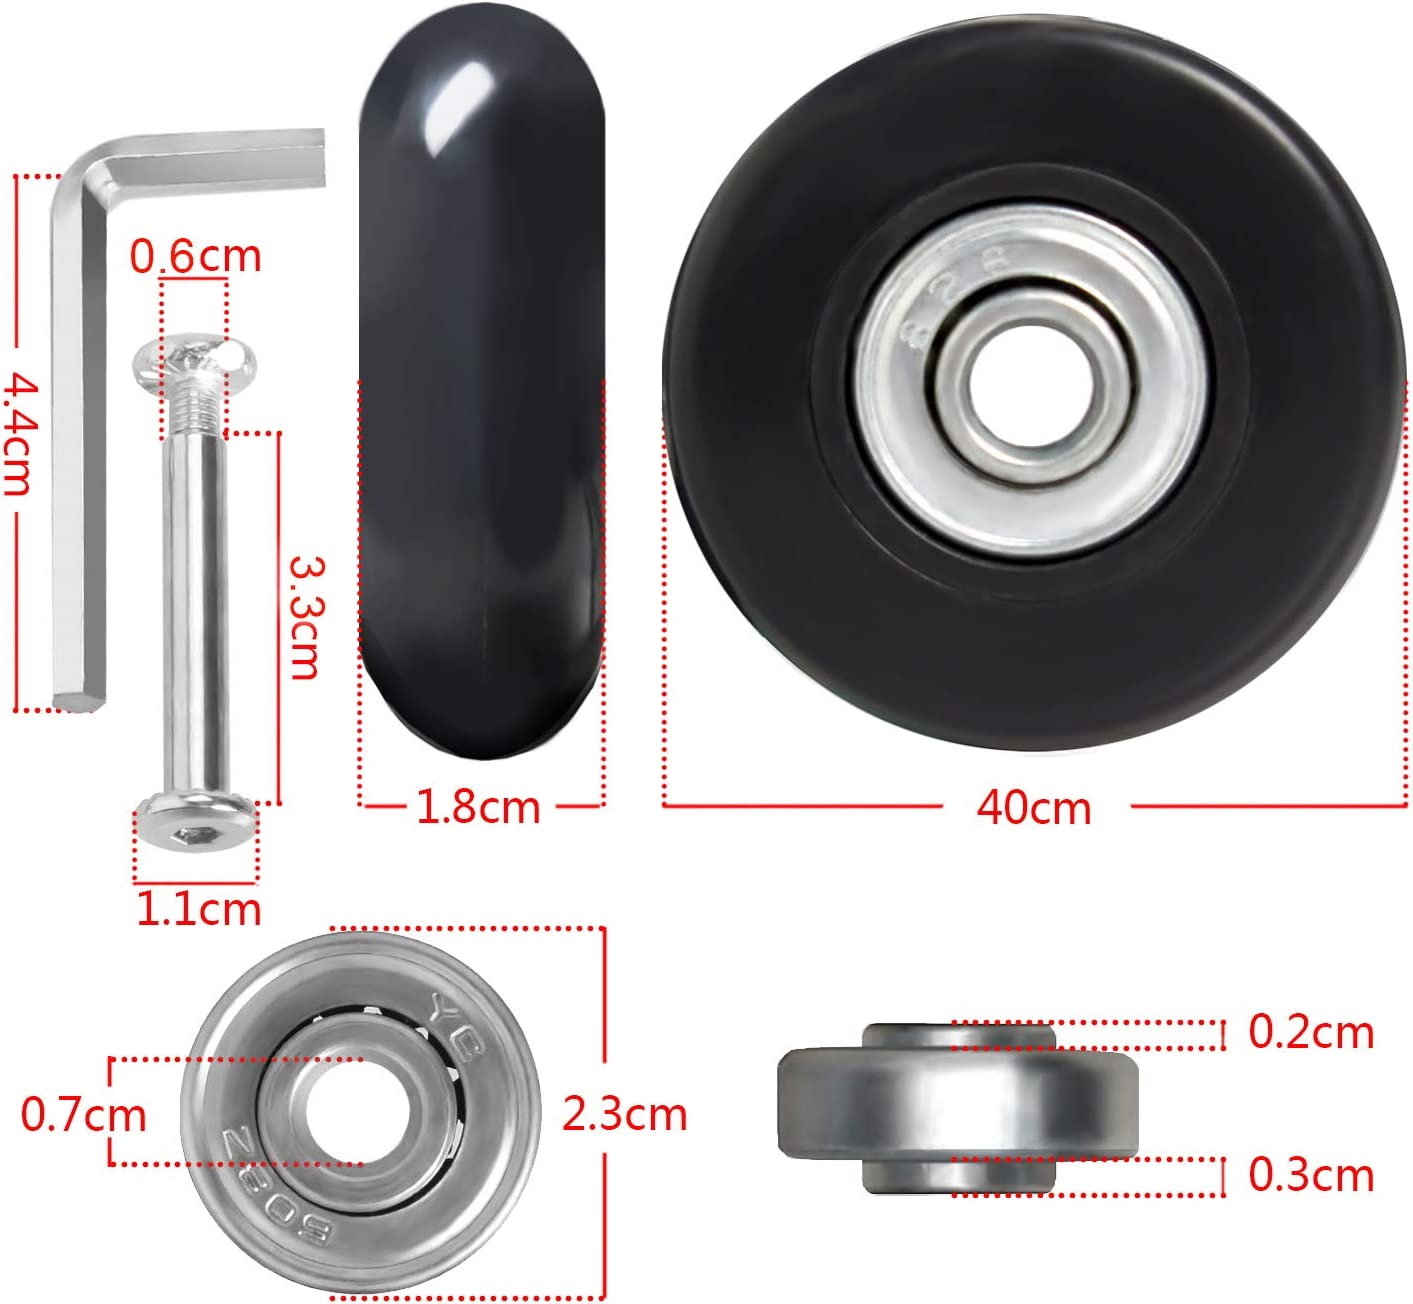 GSHFIGHTING Luggage Suitcase Replacement Wheels Rubber w//ABEC 608zz Skate Inline Outdoor Skate Repair Kits Set of 4 Wheels